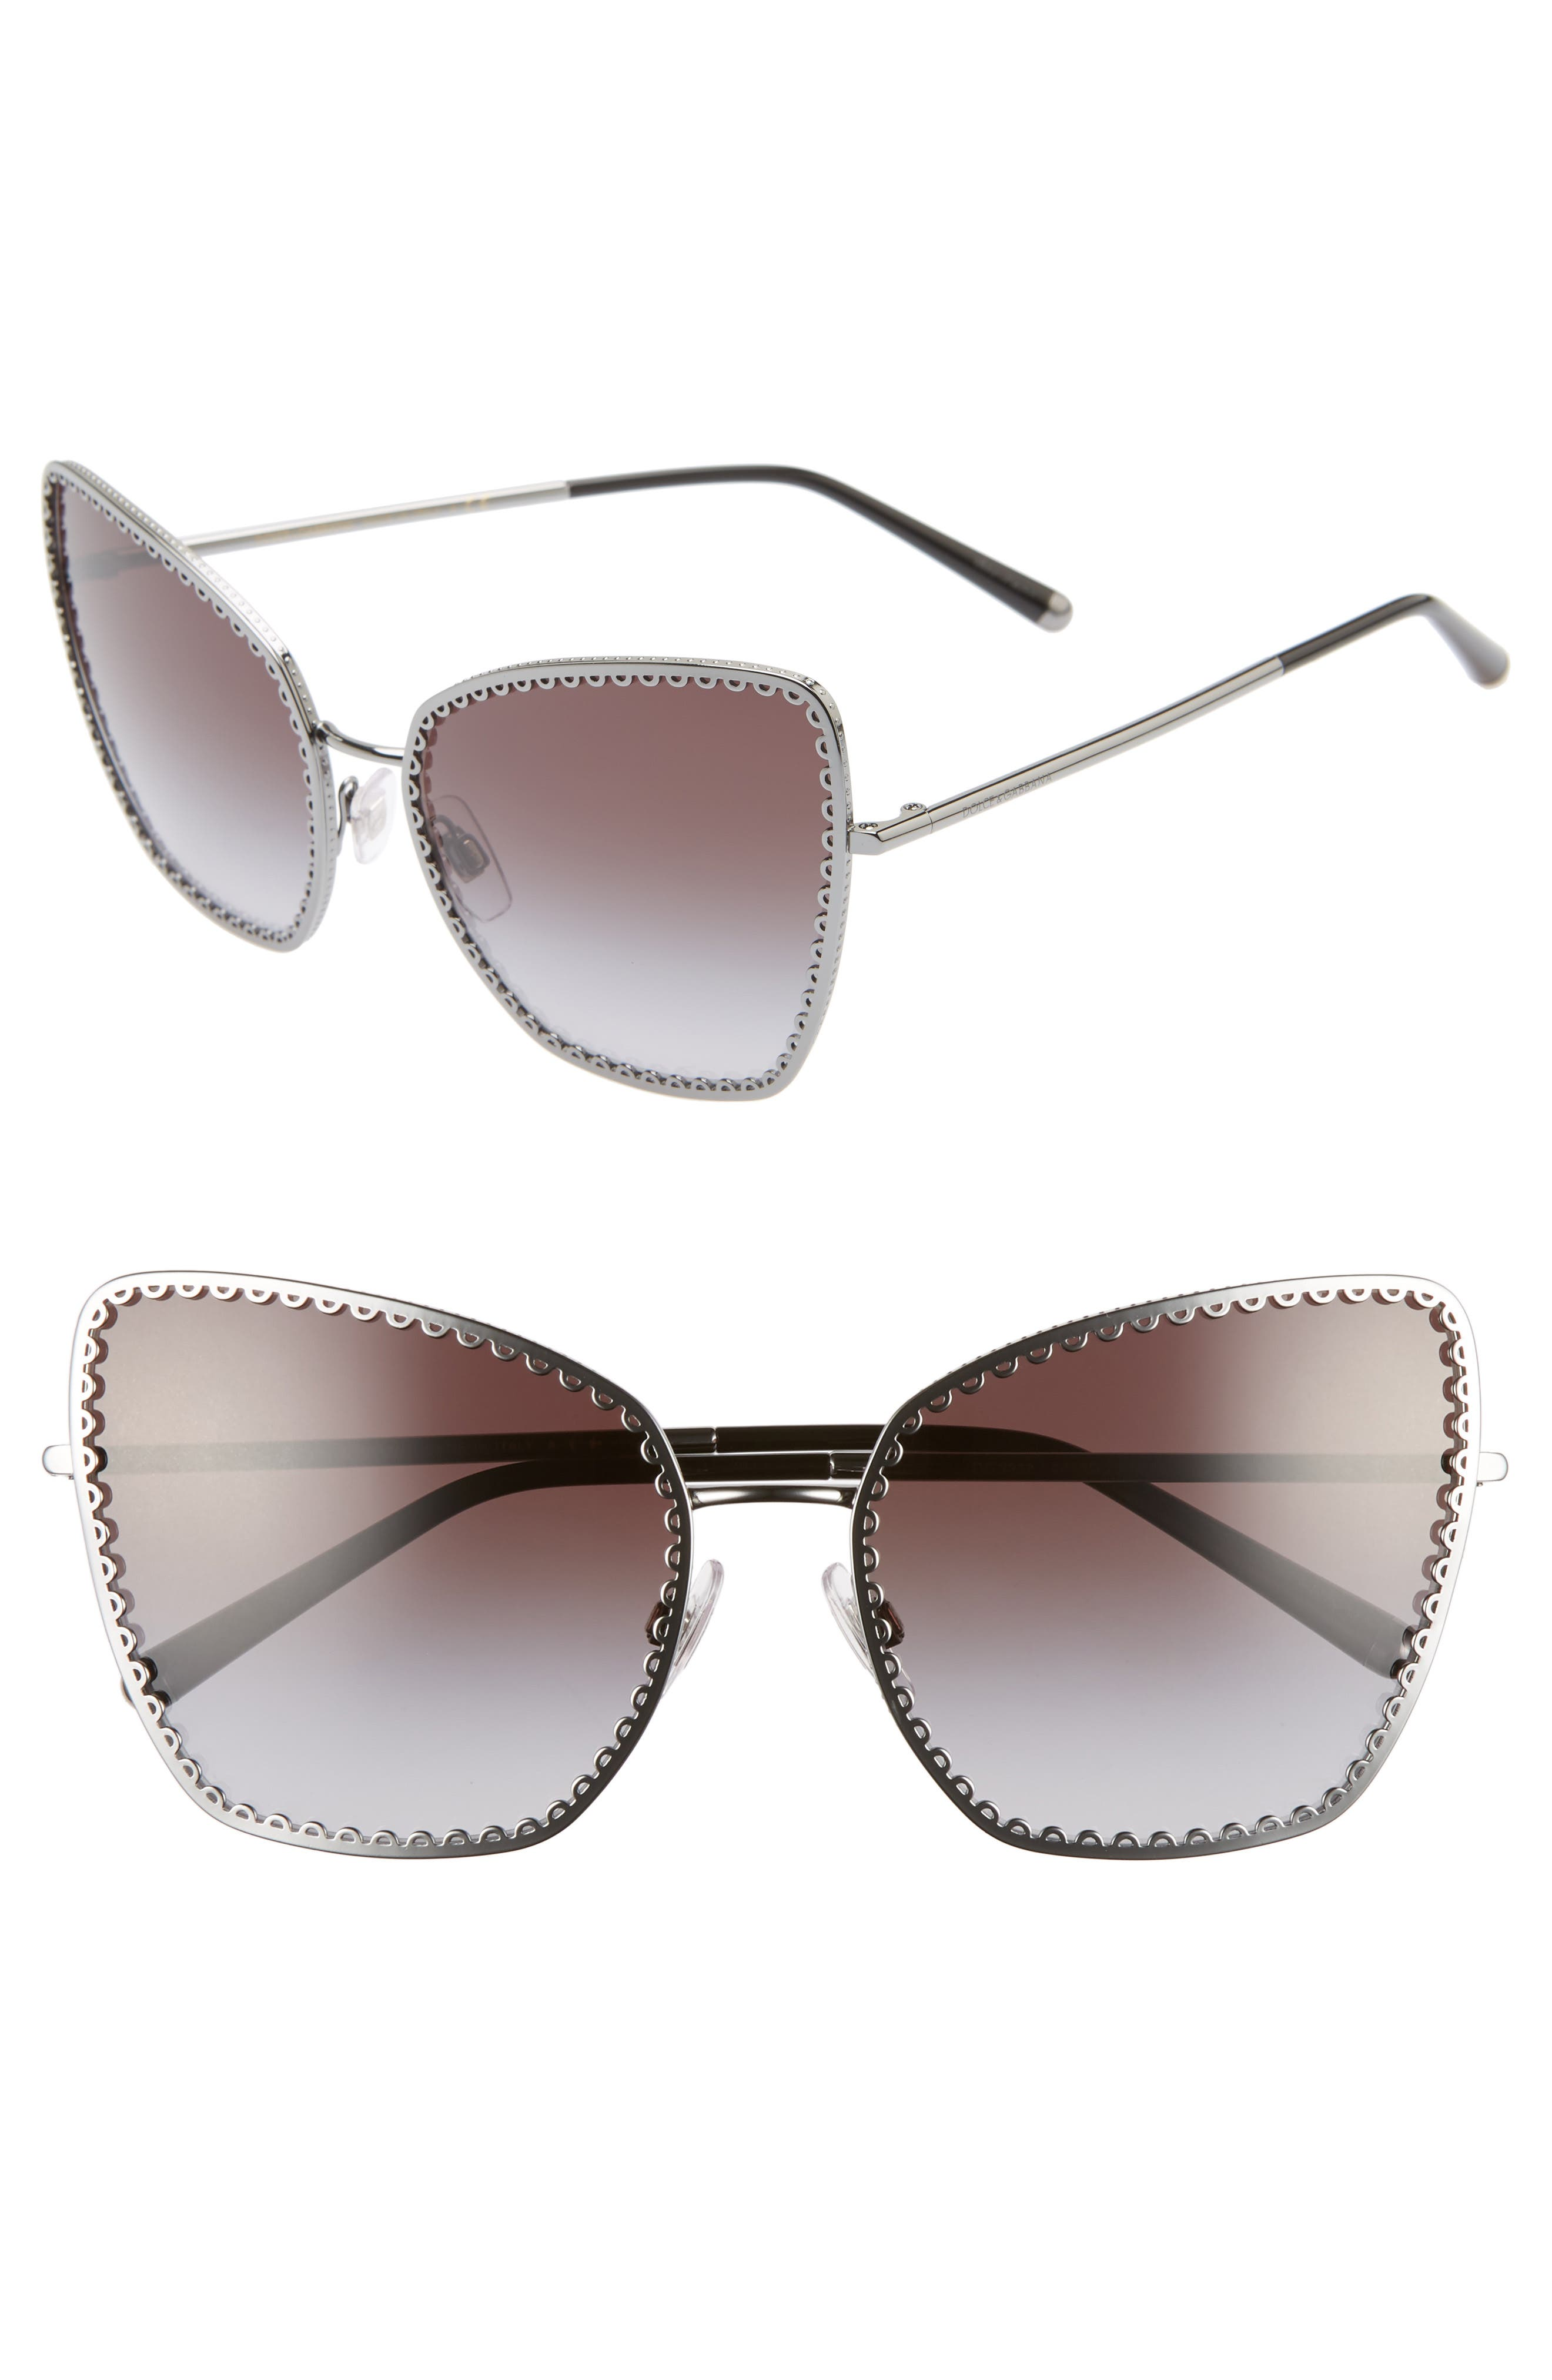 Dolce & gabbana Sacred Heart 61Mm Gradient Cat Eye Sunglasses - Gunmetal Gradient